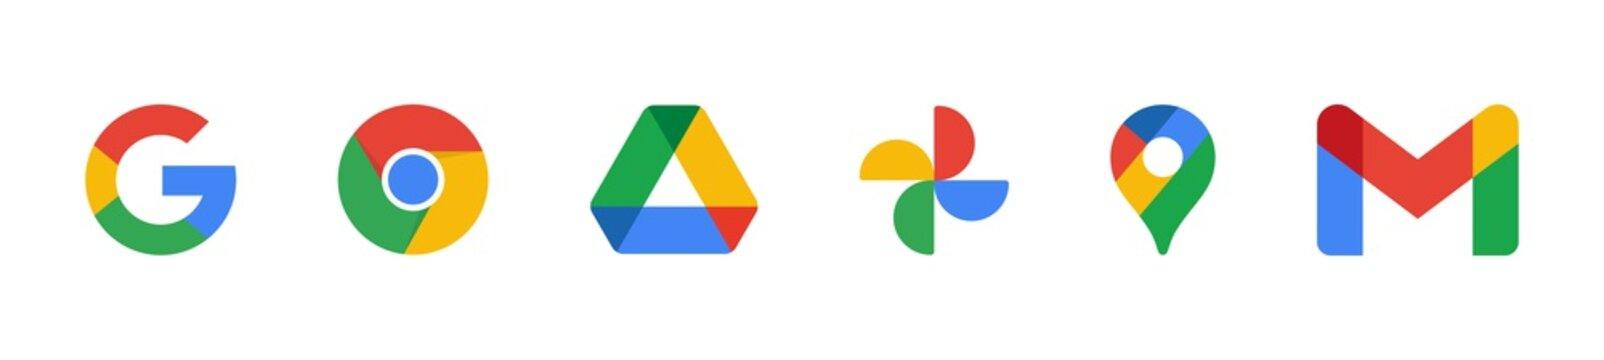 Google products and programs logo on a white background, google icons collections